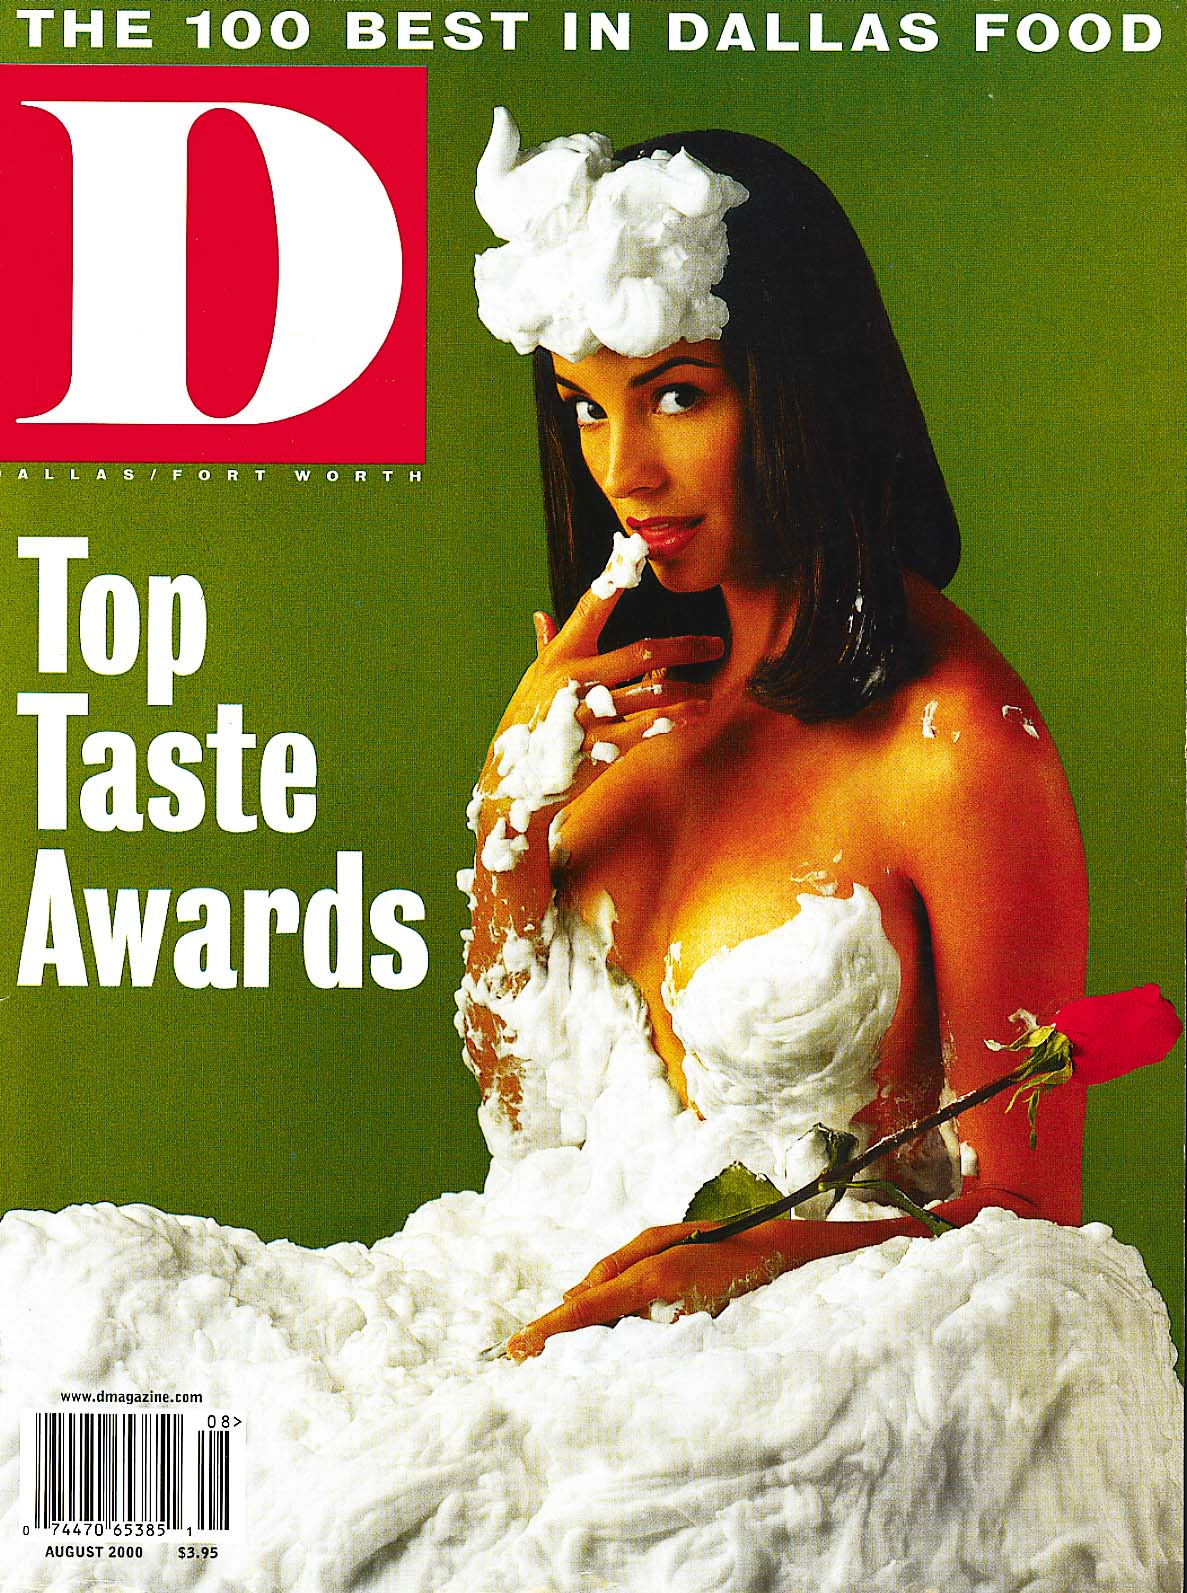 August 2000 cover